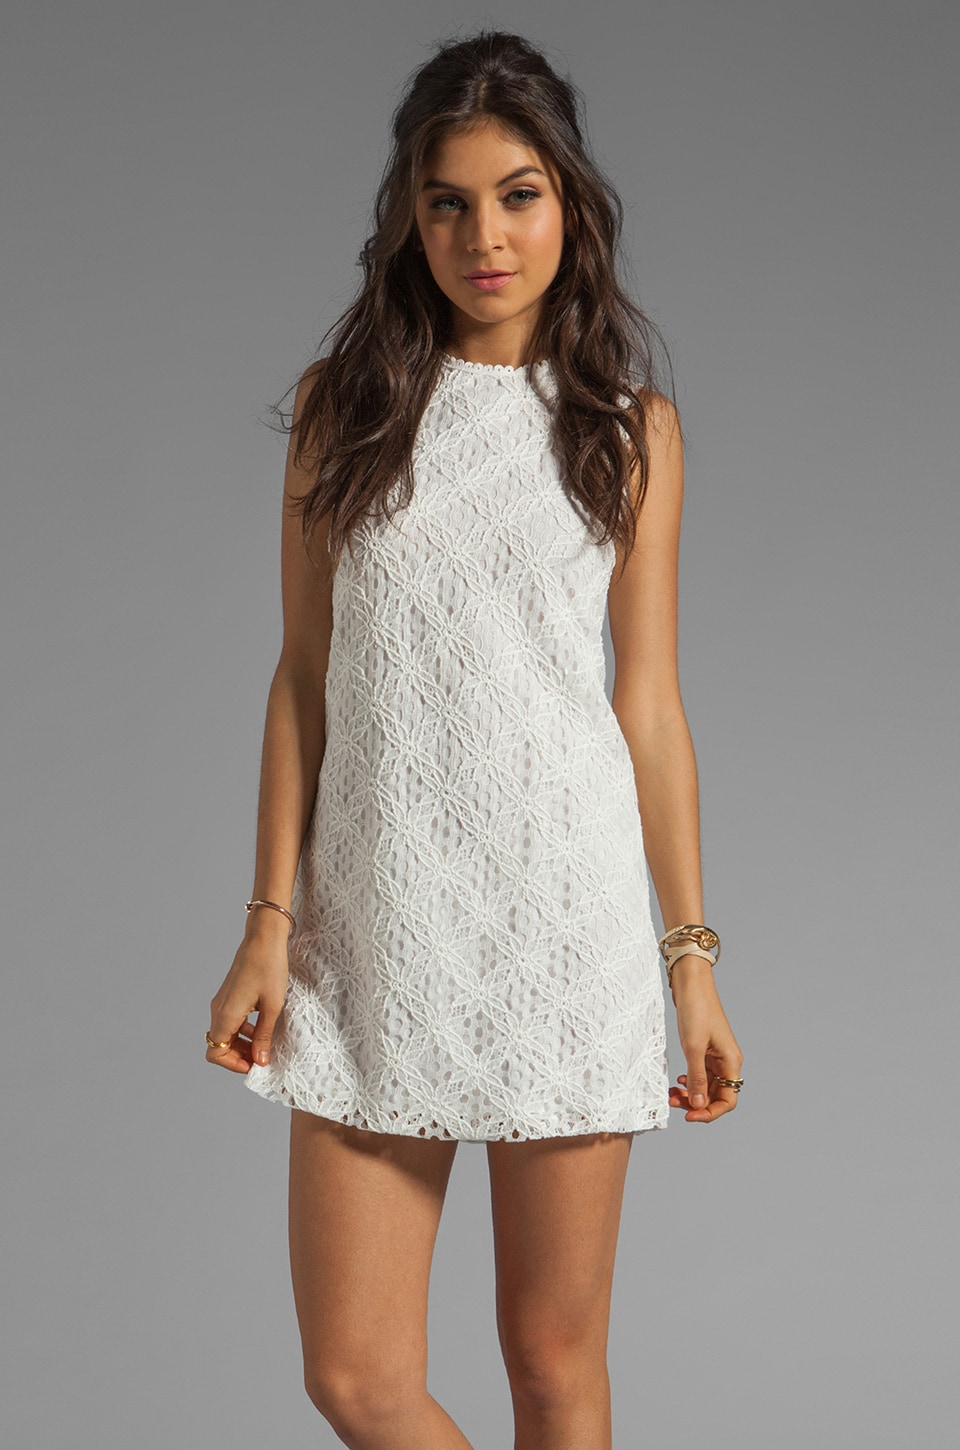 Dolce Vita Olie Crochet Lace Tank Dress in White